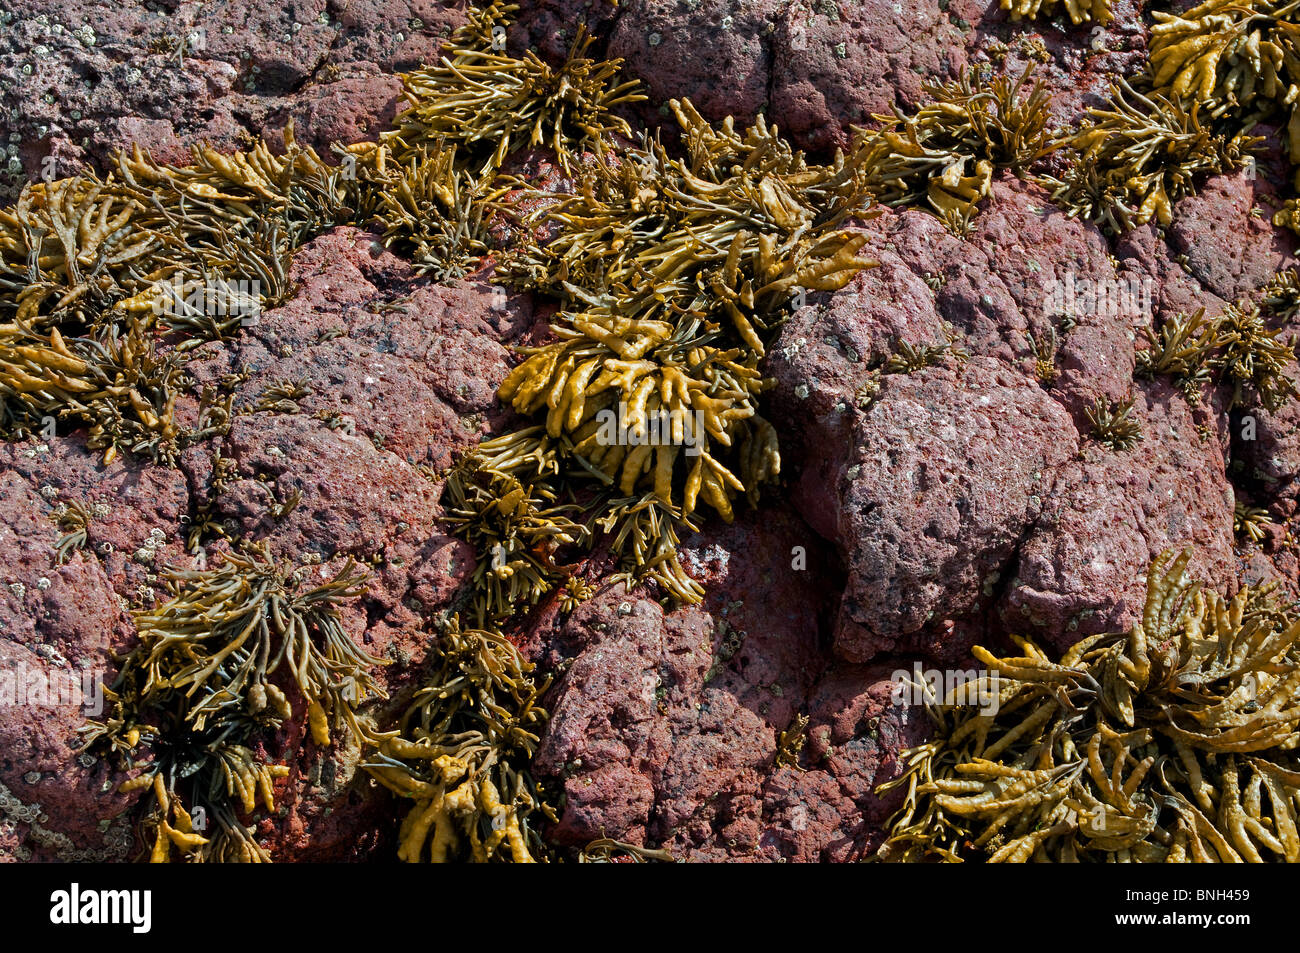 red sandstone rock covered with seaweed at cawsand in cornwall, uk - Stock Image